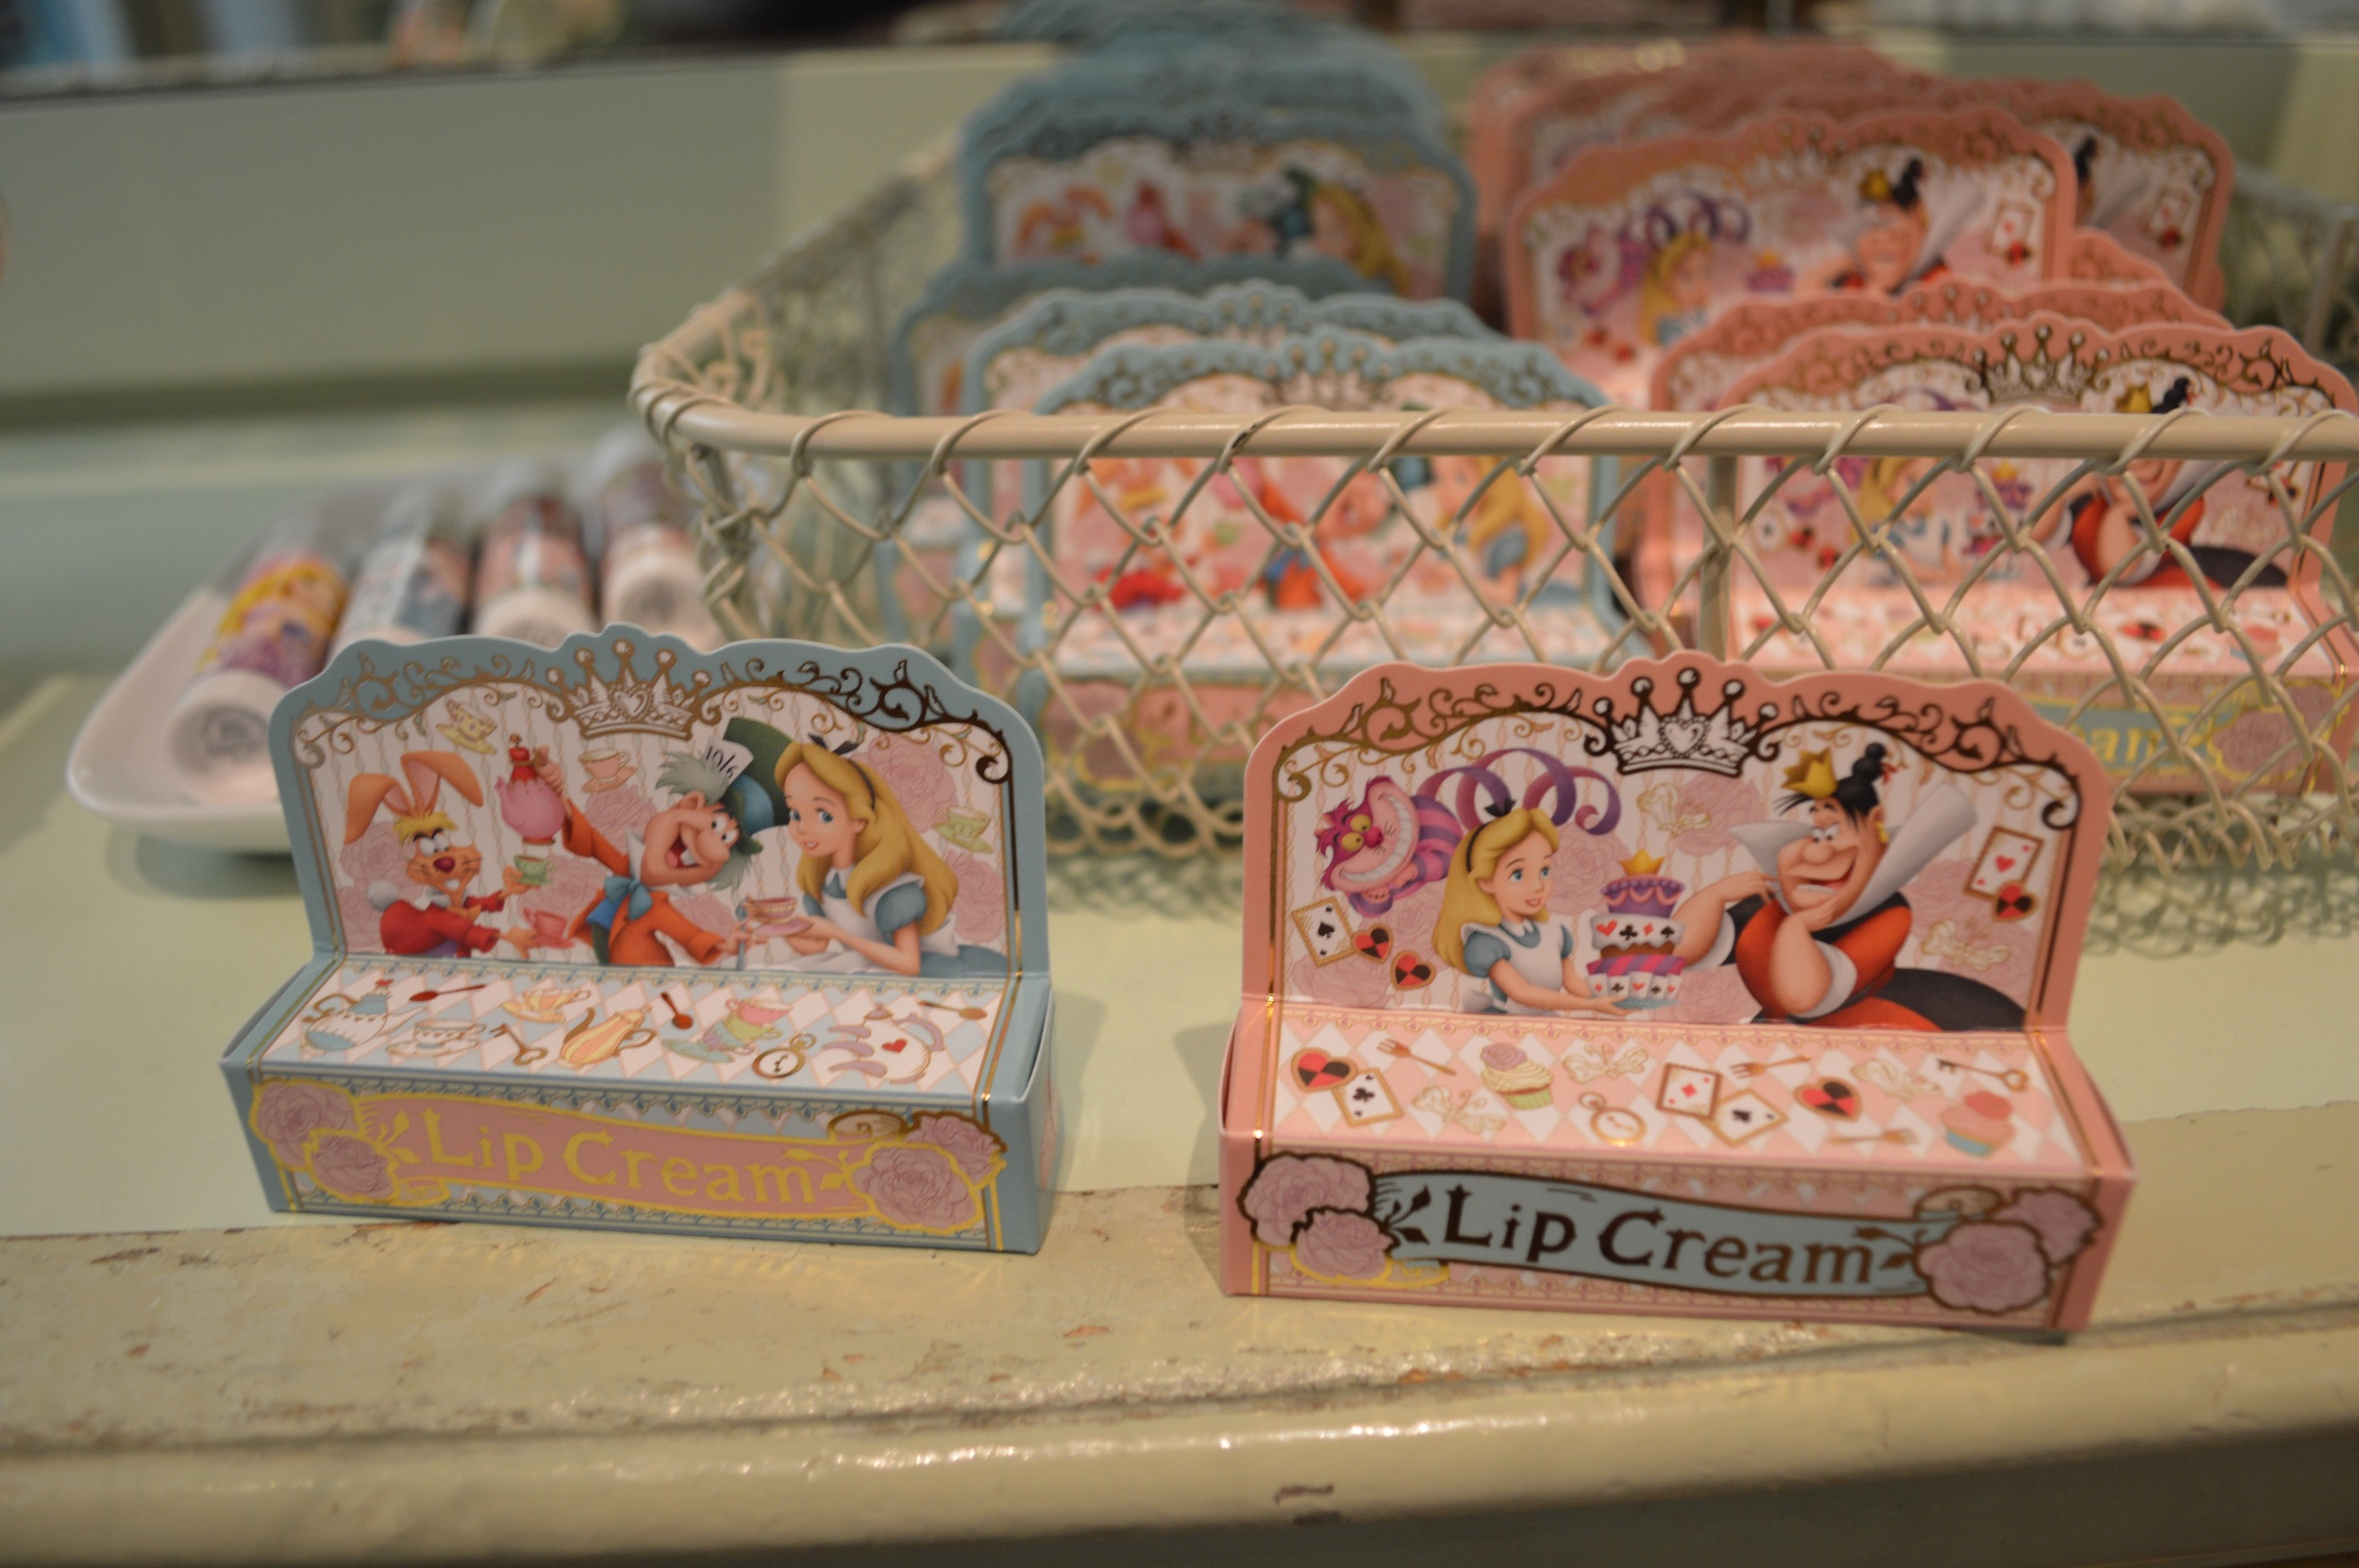 Alice in Wonderland Lip Cream for 800 yen